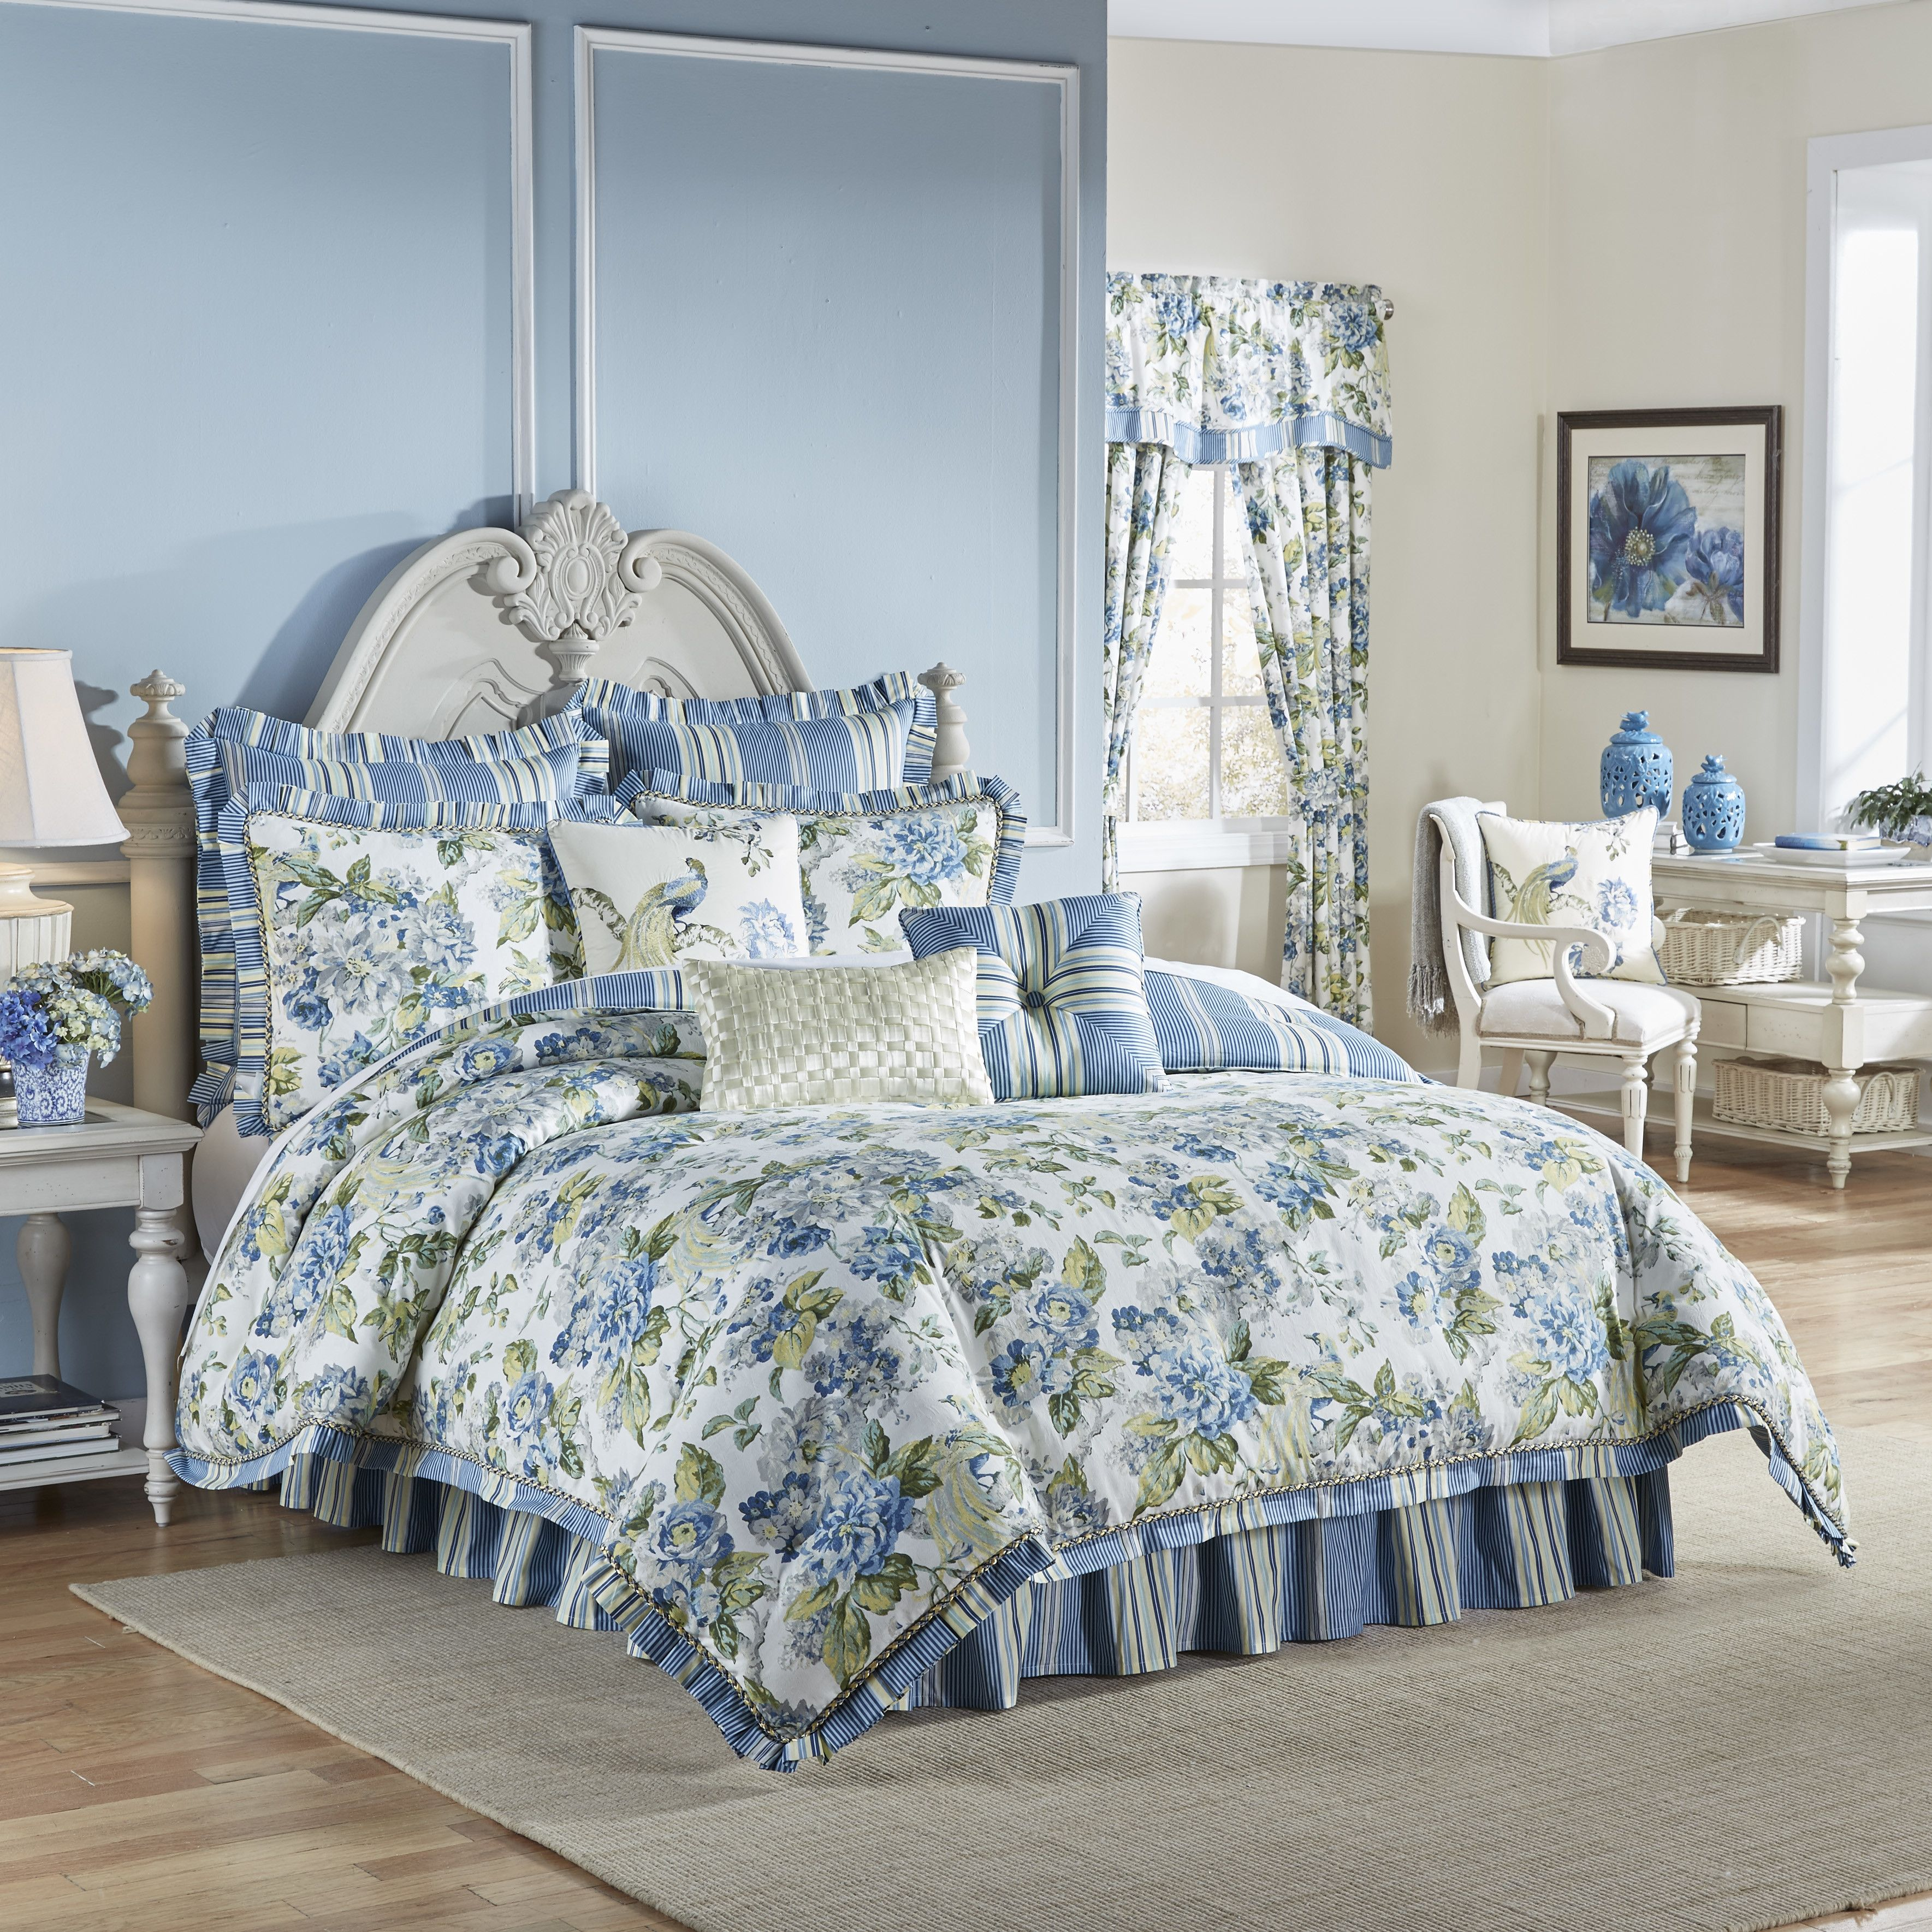 waverly floral engagement 4 piece bedding set & reviews | wayfair